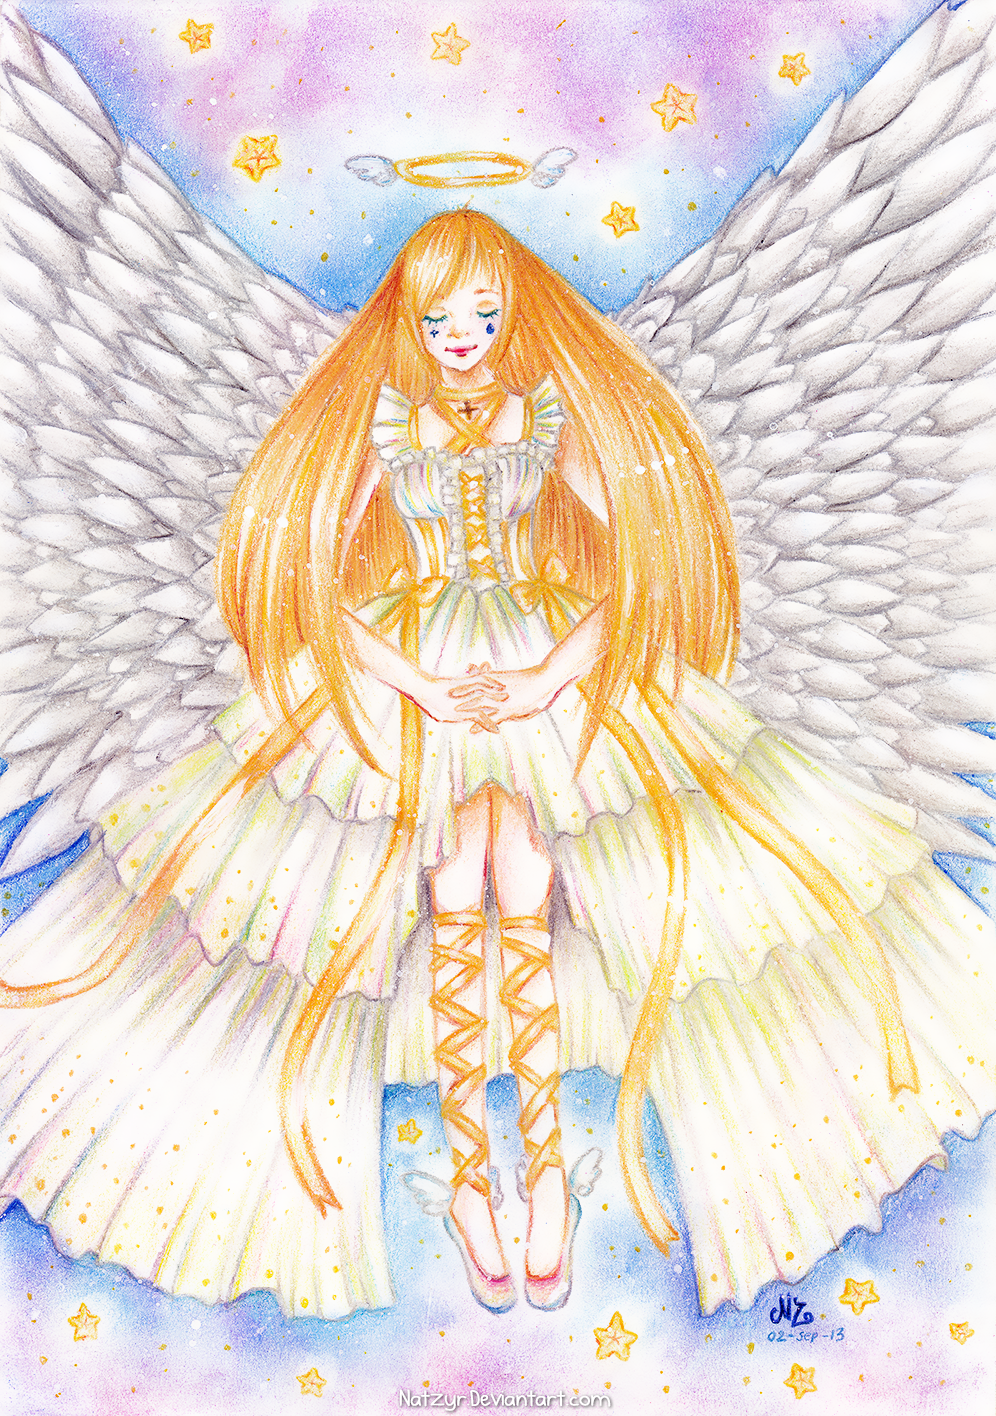 http://fc03.deviantart.net/fs71/f/2014/054/c/0/my_little_angel_by_natzyr-d77rtwd.png